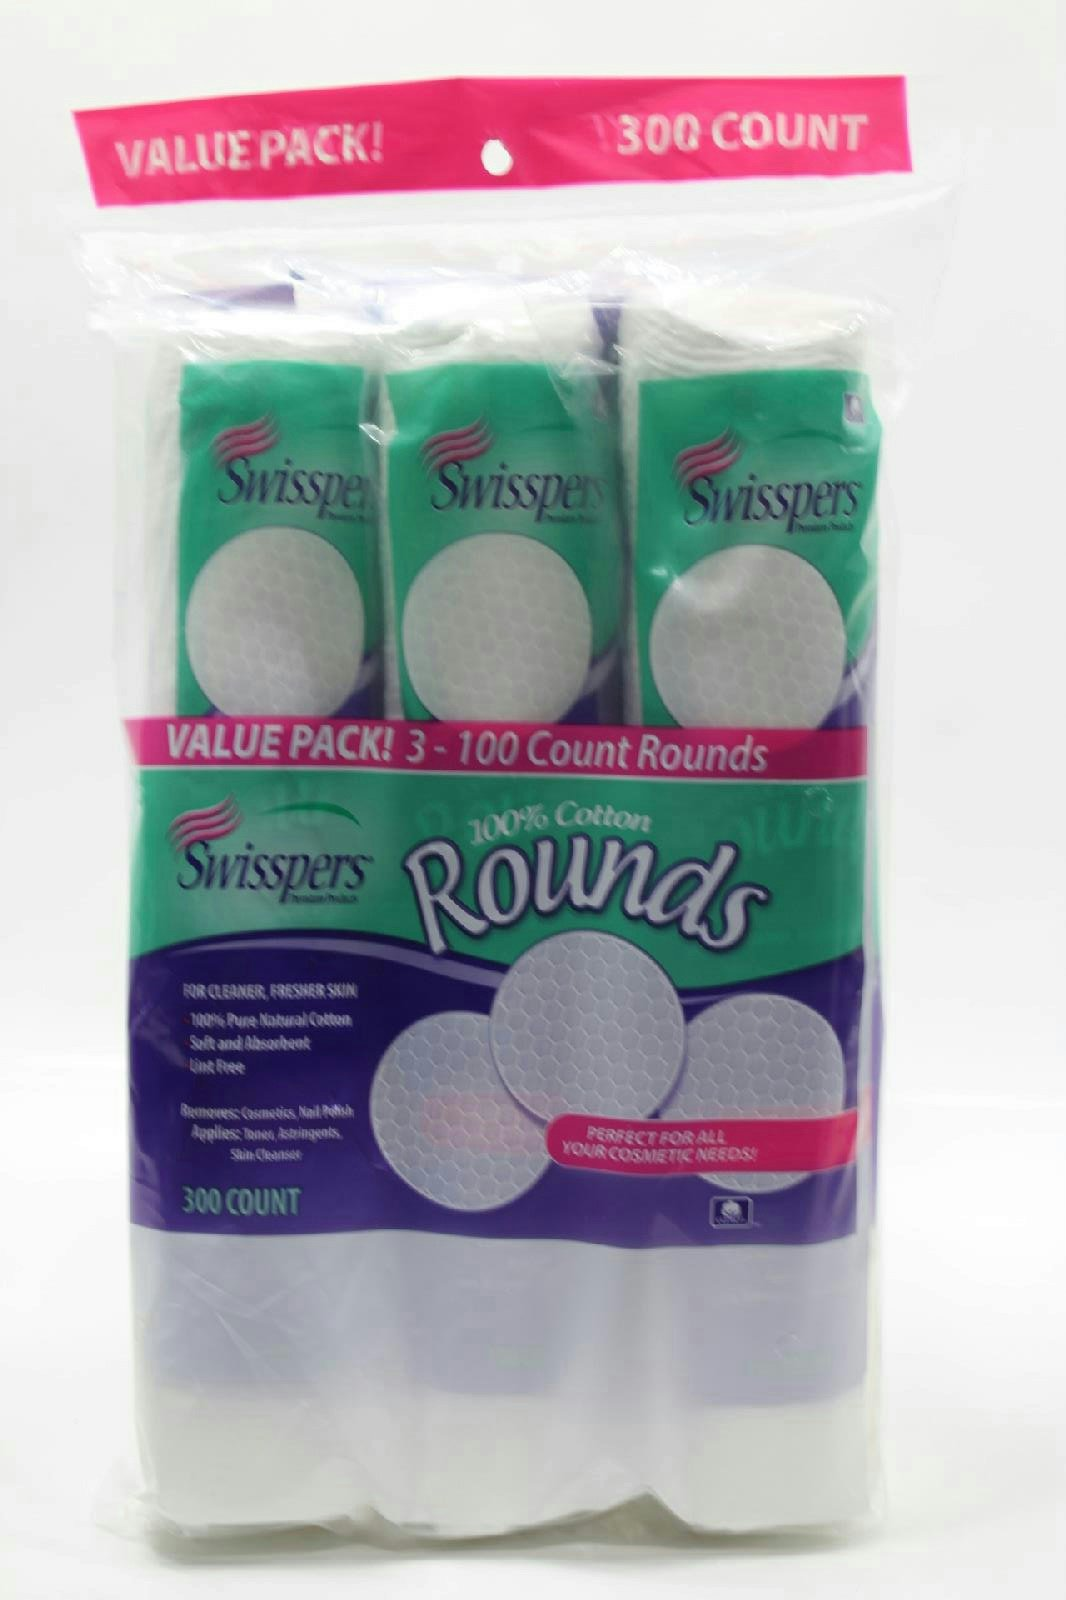 Swisspers 100% Cotton Rounds 300 Count Value Pack